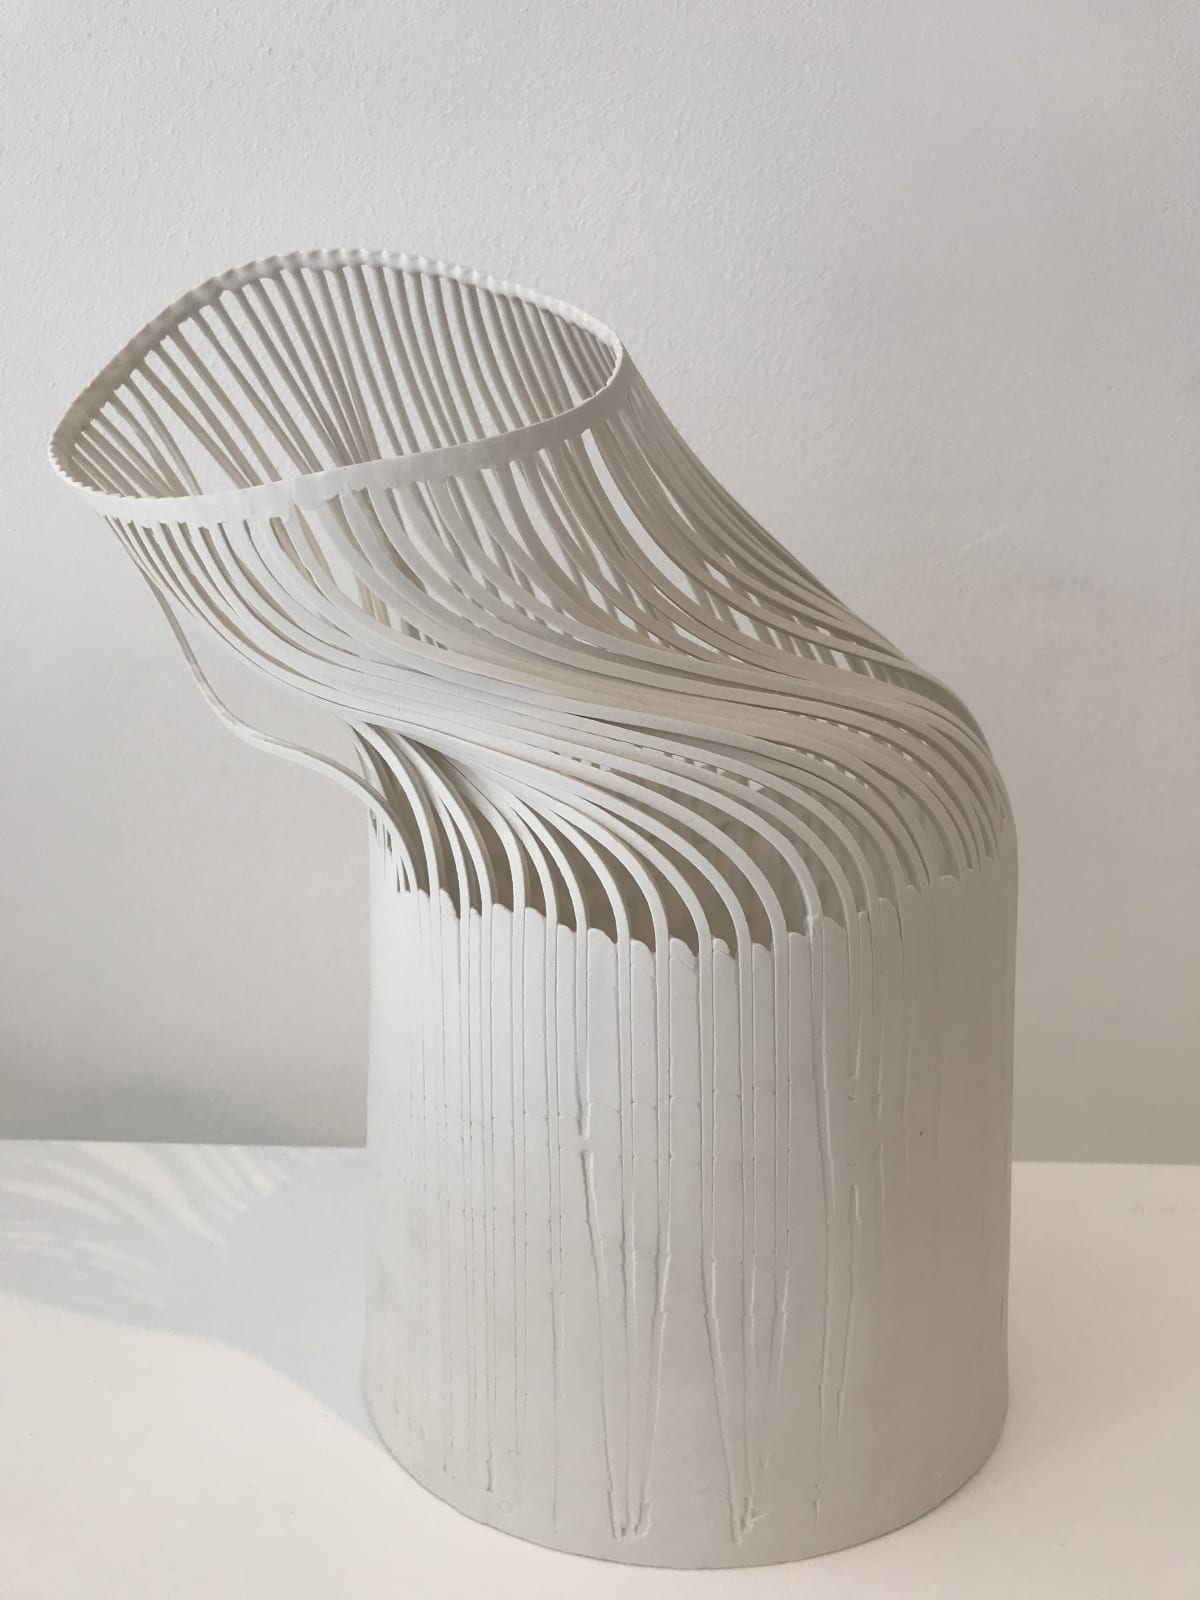 Lauren Nauman Lines - White with base porcelain, slipcast height 30 cm height 11 3/4 in